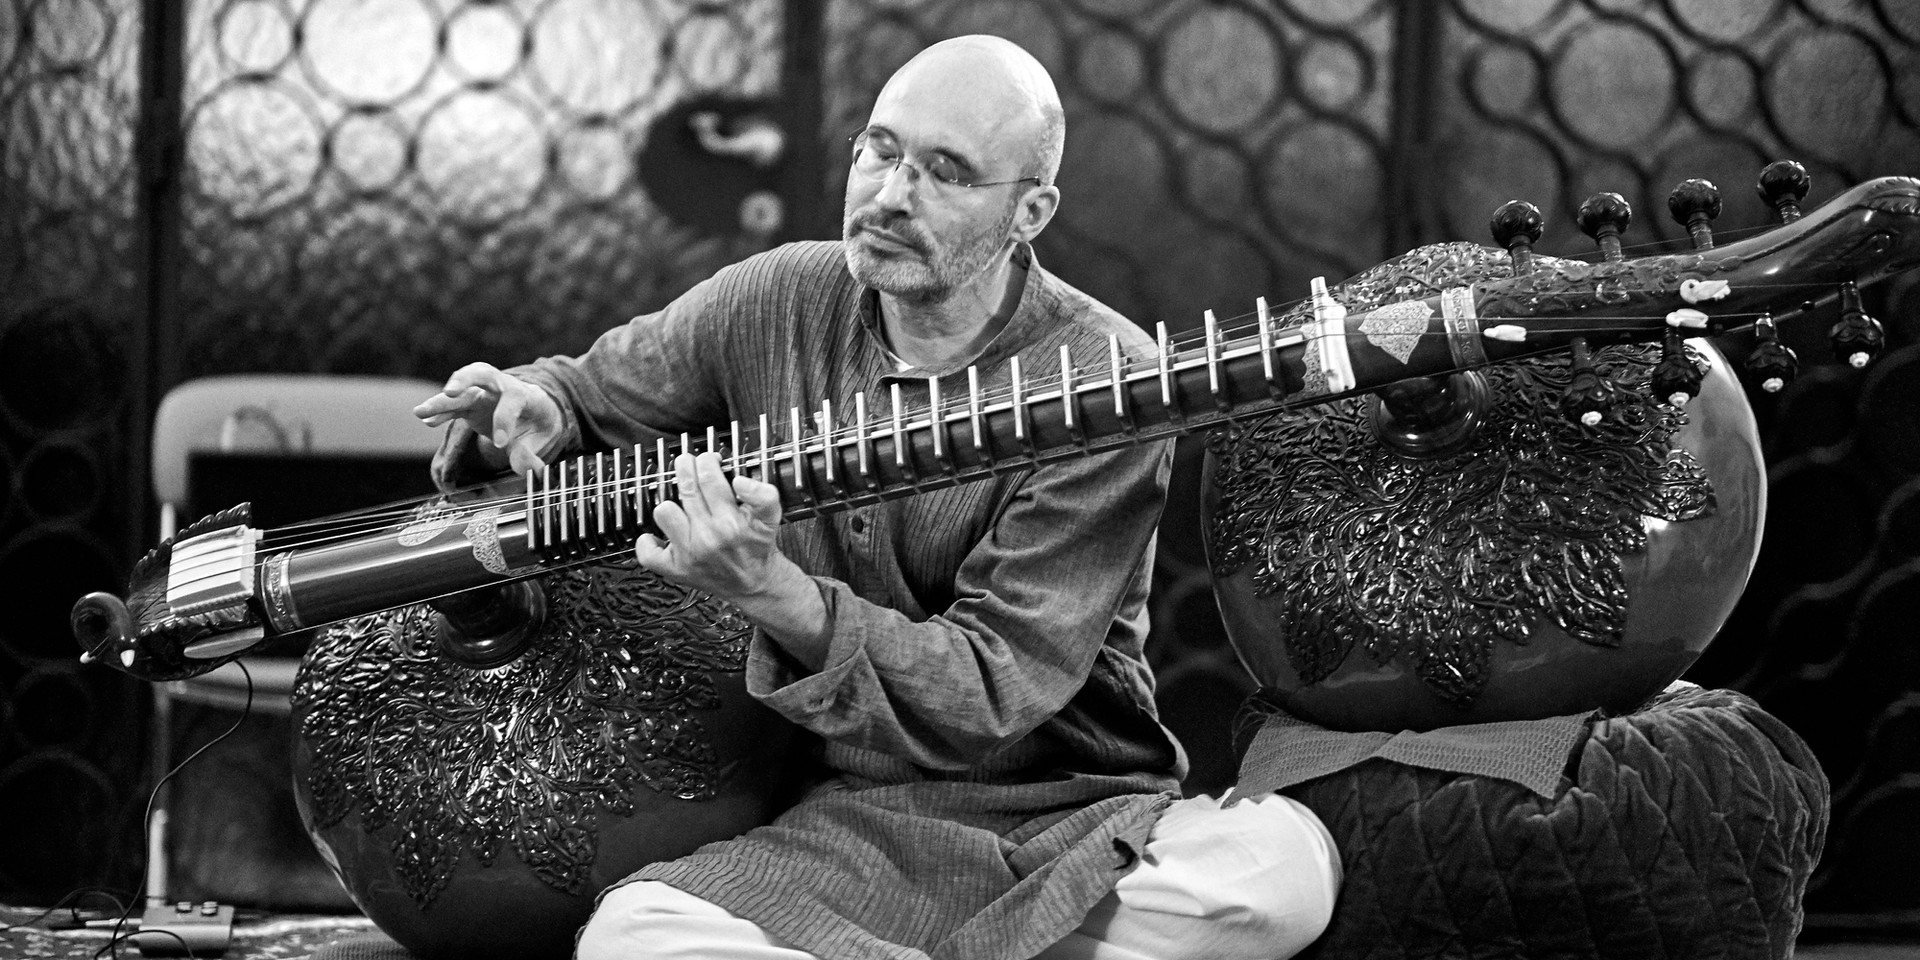 Carsten Wicke - Rudra Vina concert 17th May 2019